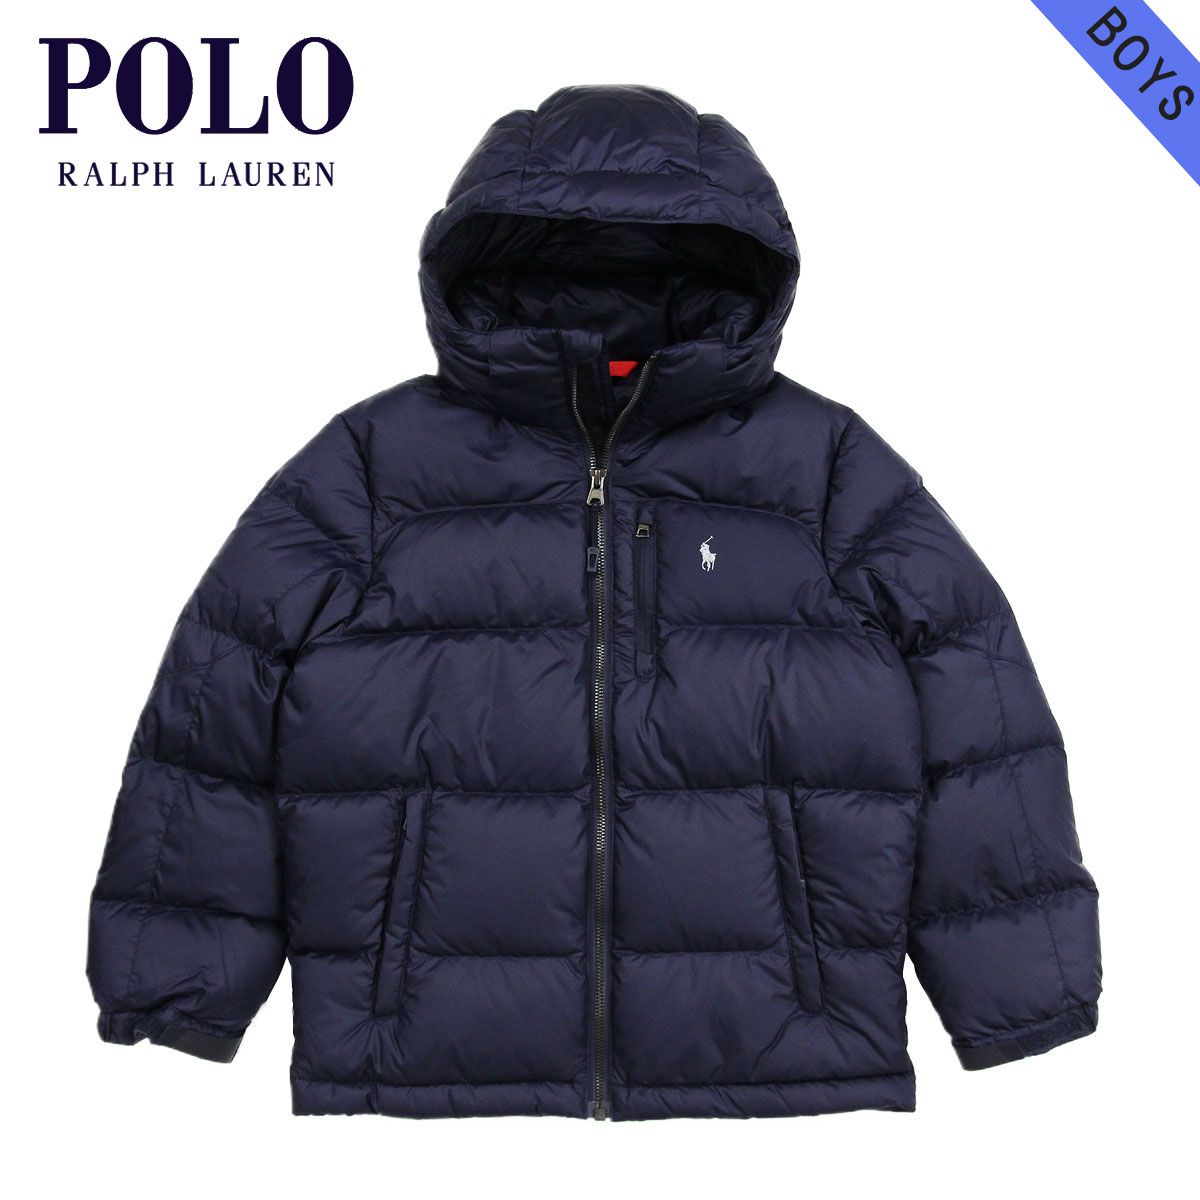 90dc20380f Polo Ralph Lauren kids POLO RALPH LAUREN CHILDREN regular article children s  clothes Boys down jacket Ripstop Down Jacket